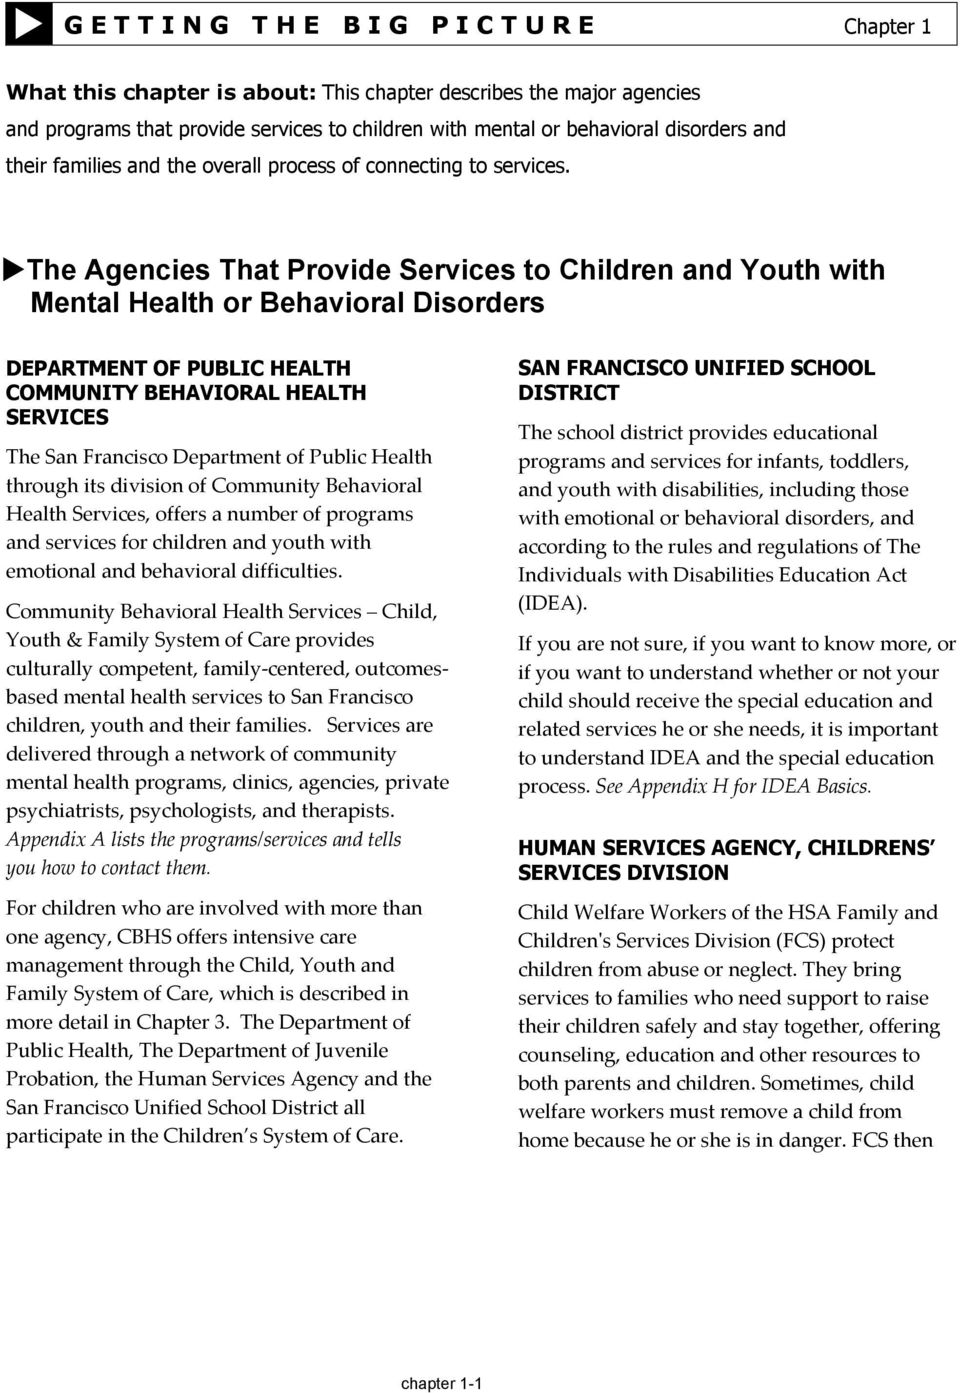 The Agencies That Provide Services to Children and Youth with Mental Health or Behavioral Disorders DEPARTMENT OF PUBLIC HEALTH COMMUNITY BEHAVIORAL HEALTH SERVICES The San Francisco Department of